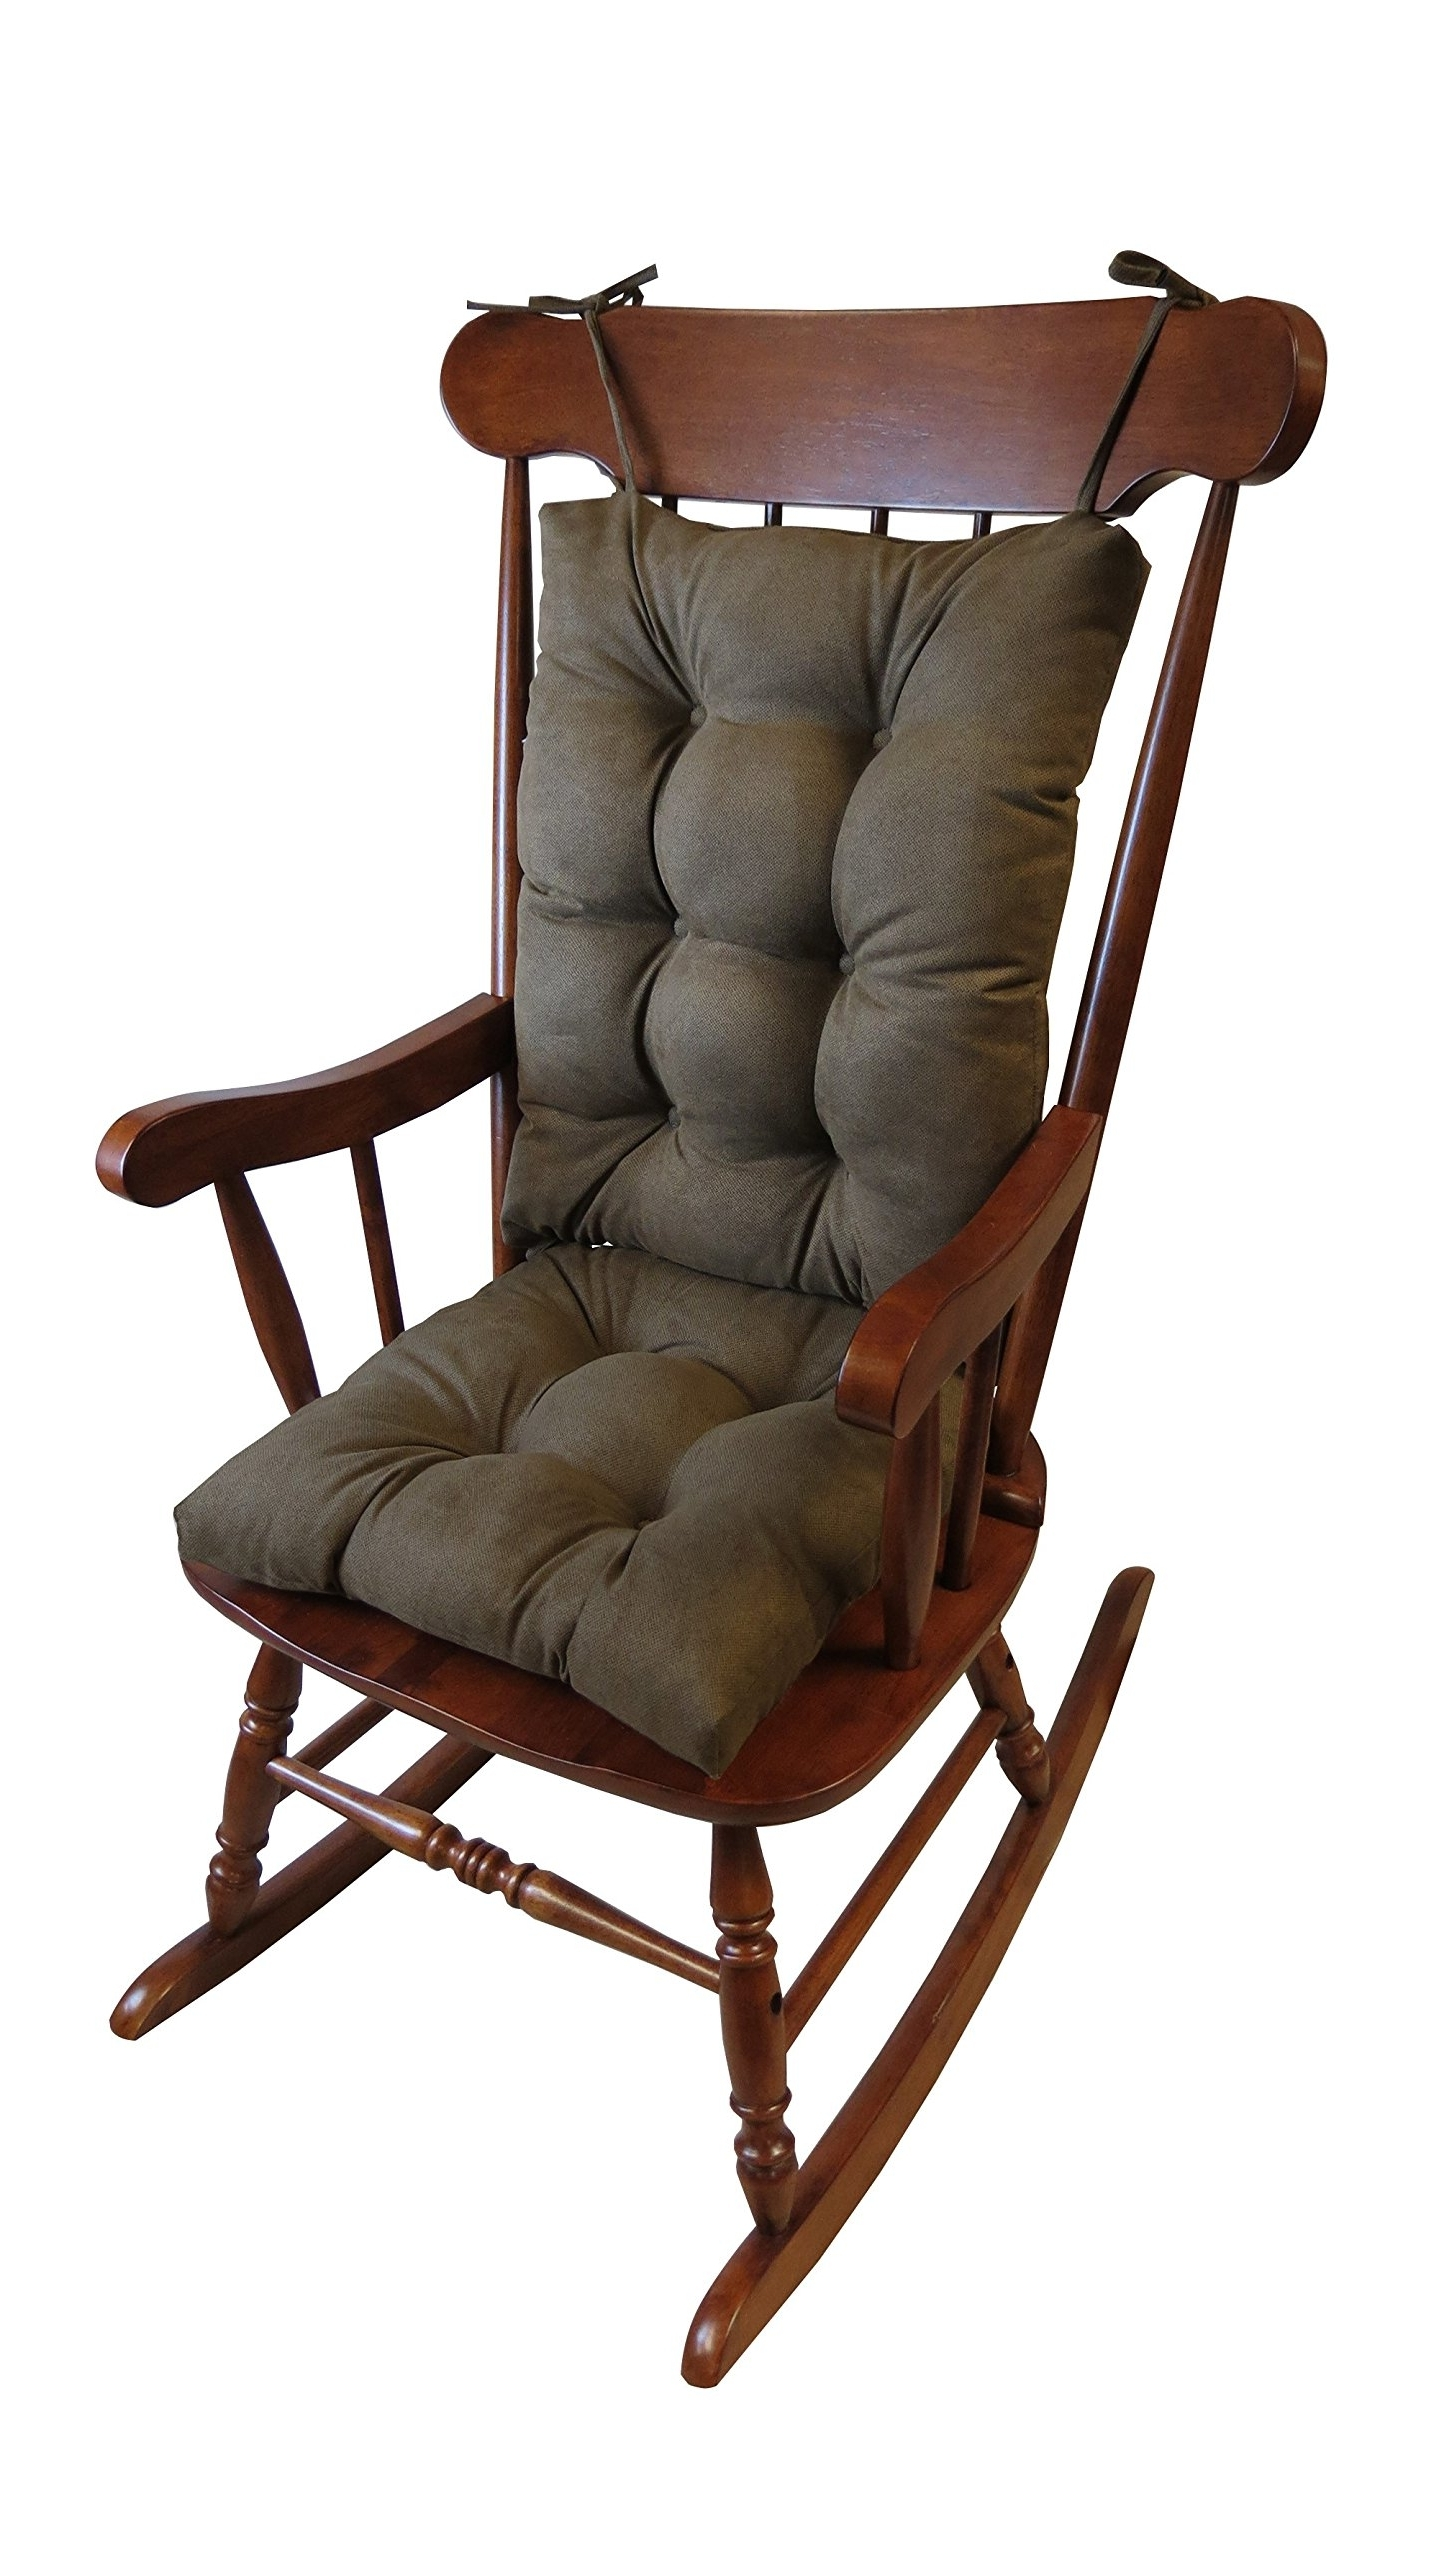 Widely Used Xl Rocking Chairs Throughout Rocking Chair Cushion Wooden Antique Seat Back Armchair Porch Living (View 3 of 15)